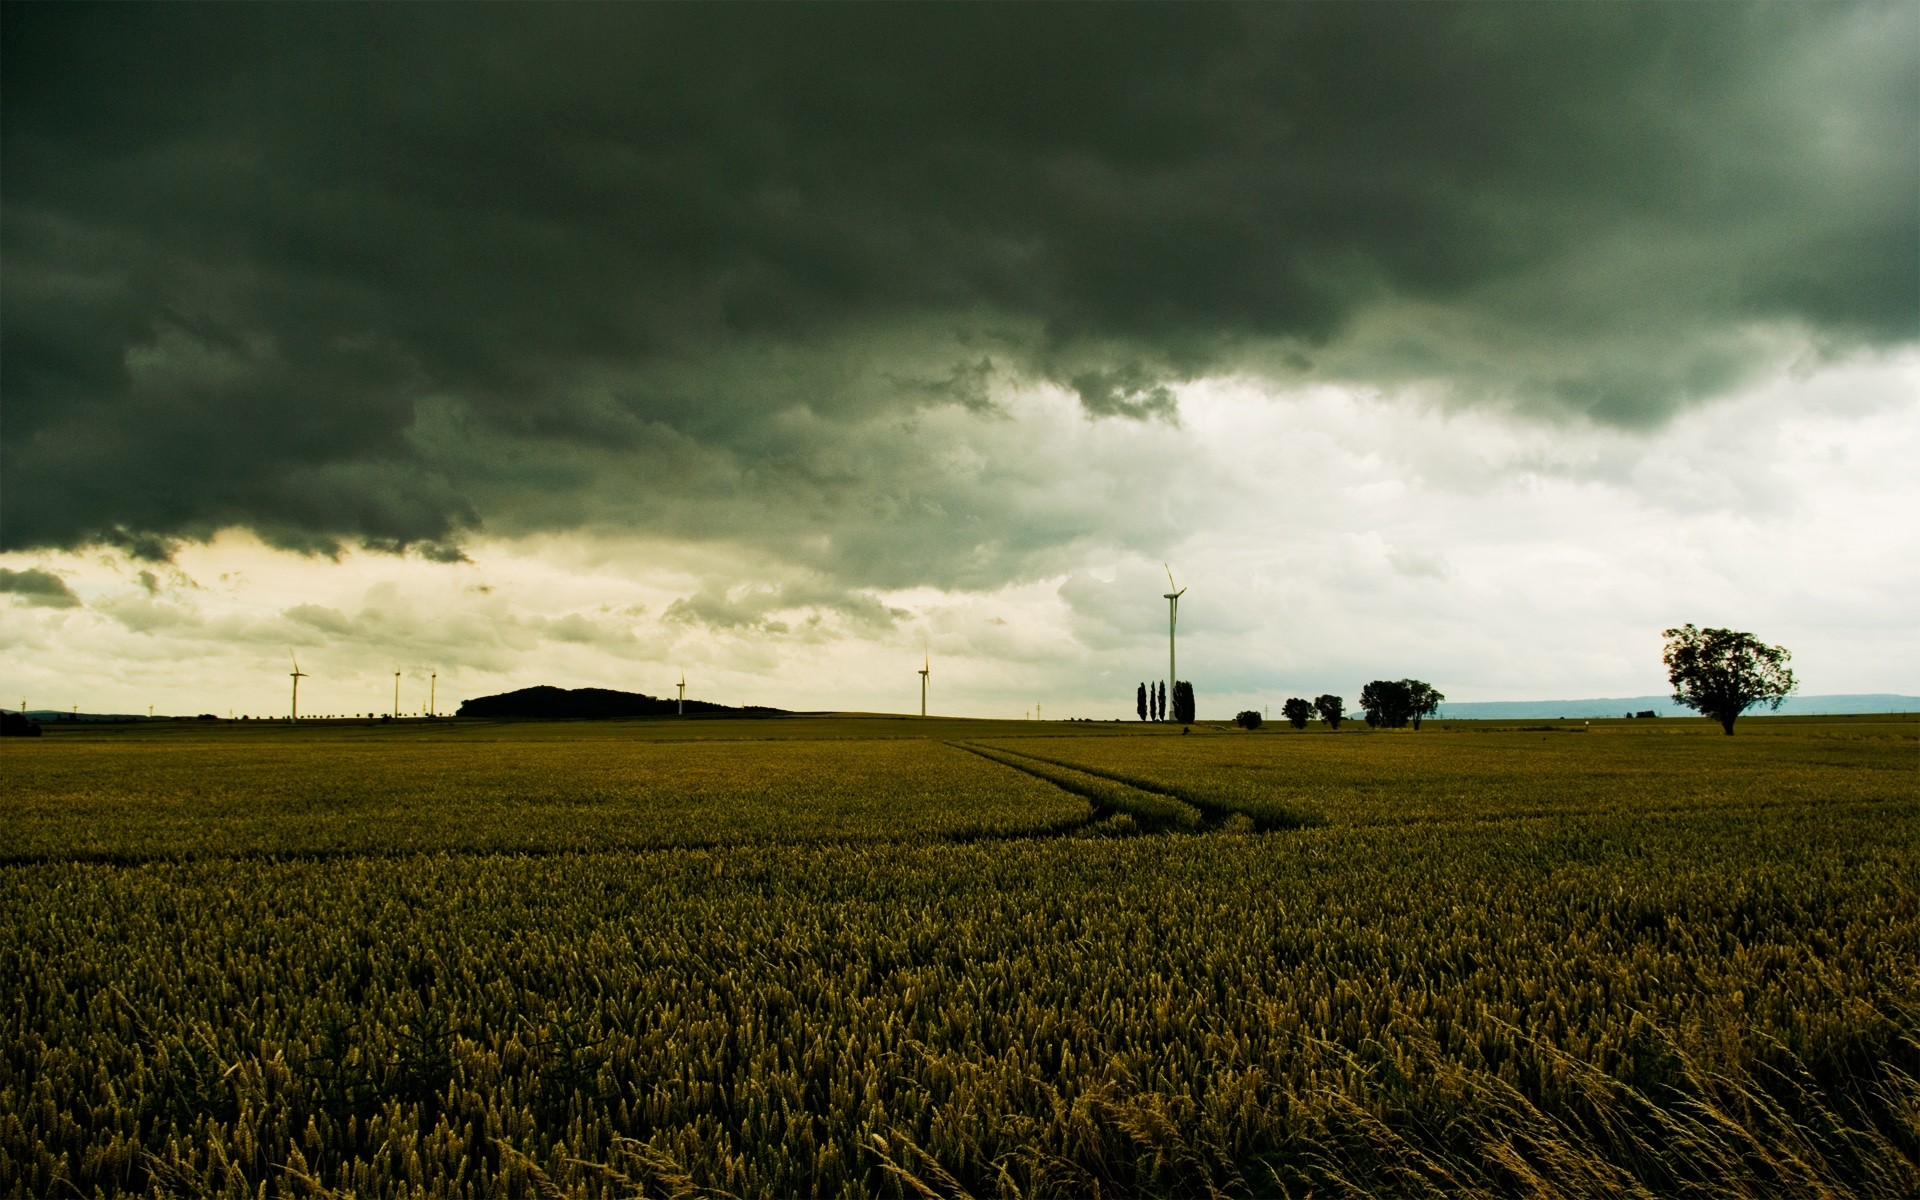 Gloomy Wheat Field Stormy Sky wallpapers and stock photos